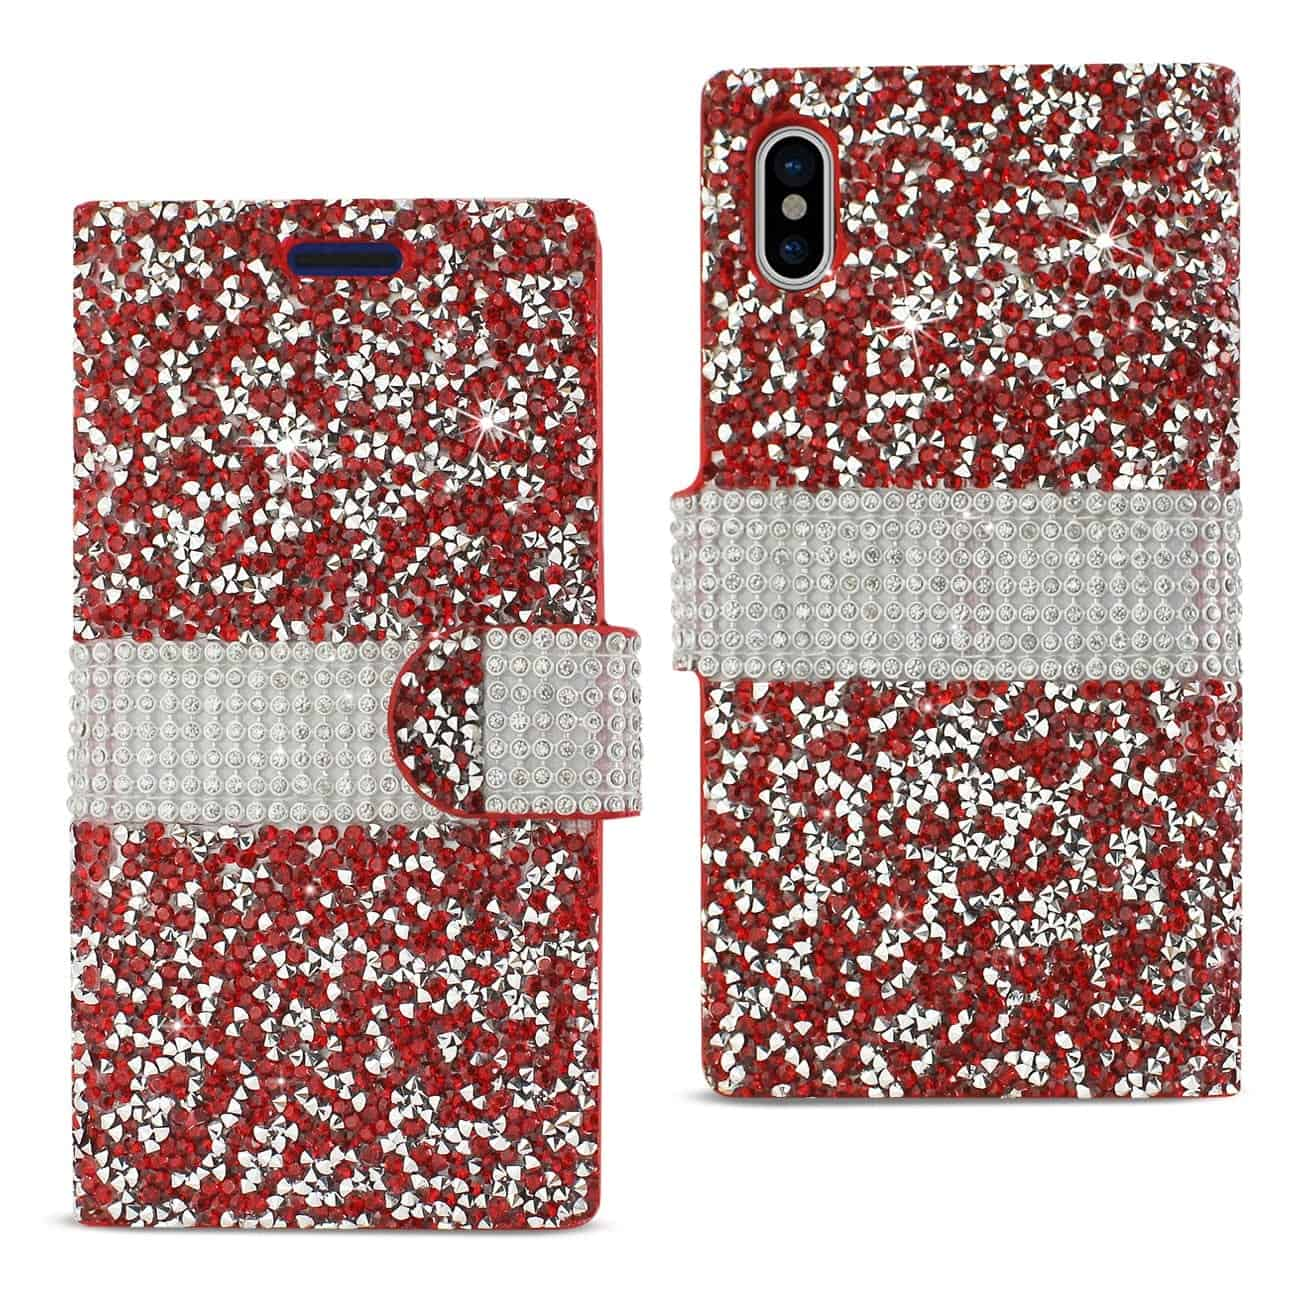 IPHONE X DIAMOND RHINESTONE WALLET CASE IN RED